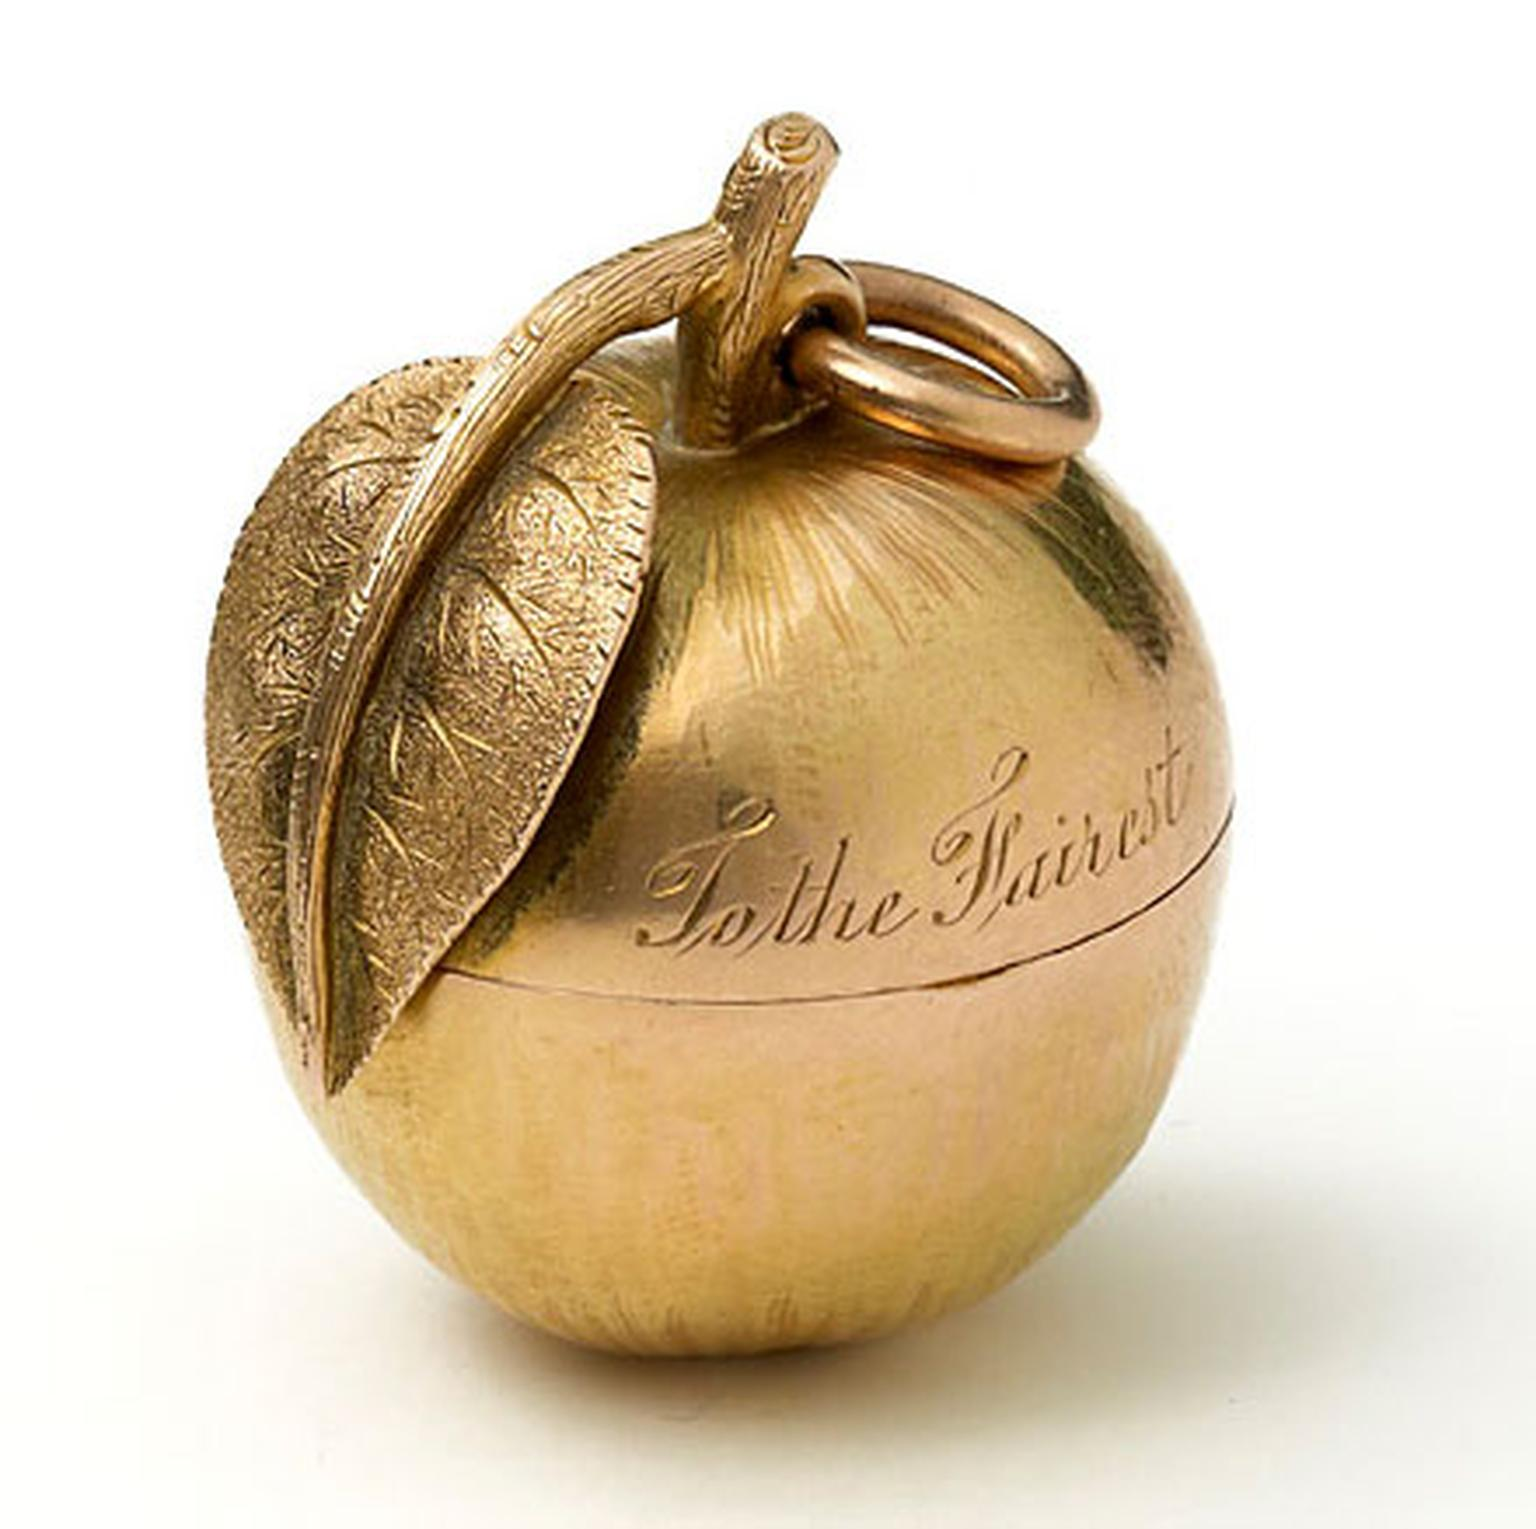 MPL-2013-Wartski-Aphrodites-Apple-An-antique-gold-vinaigrette.jpg